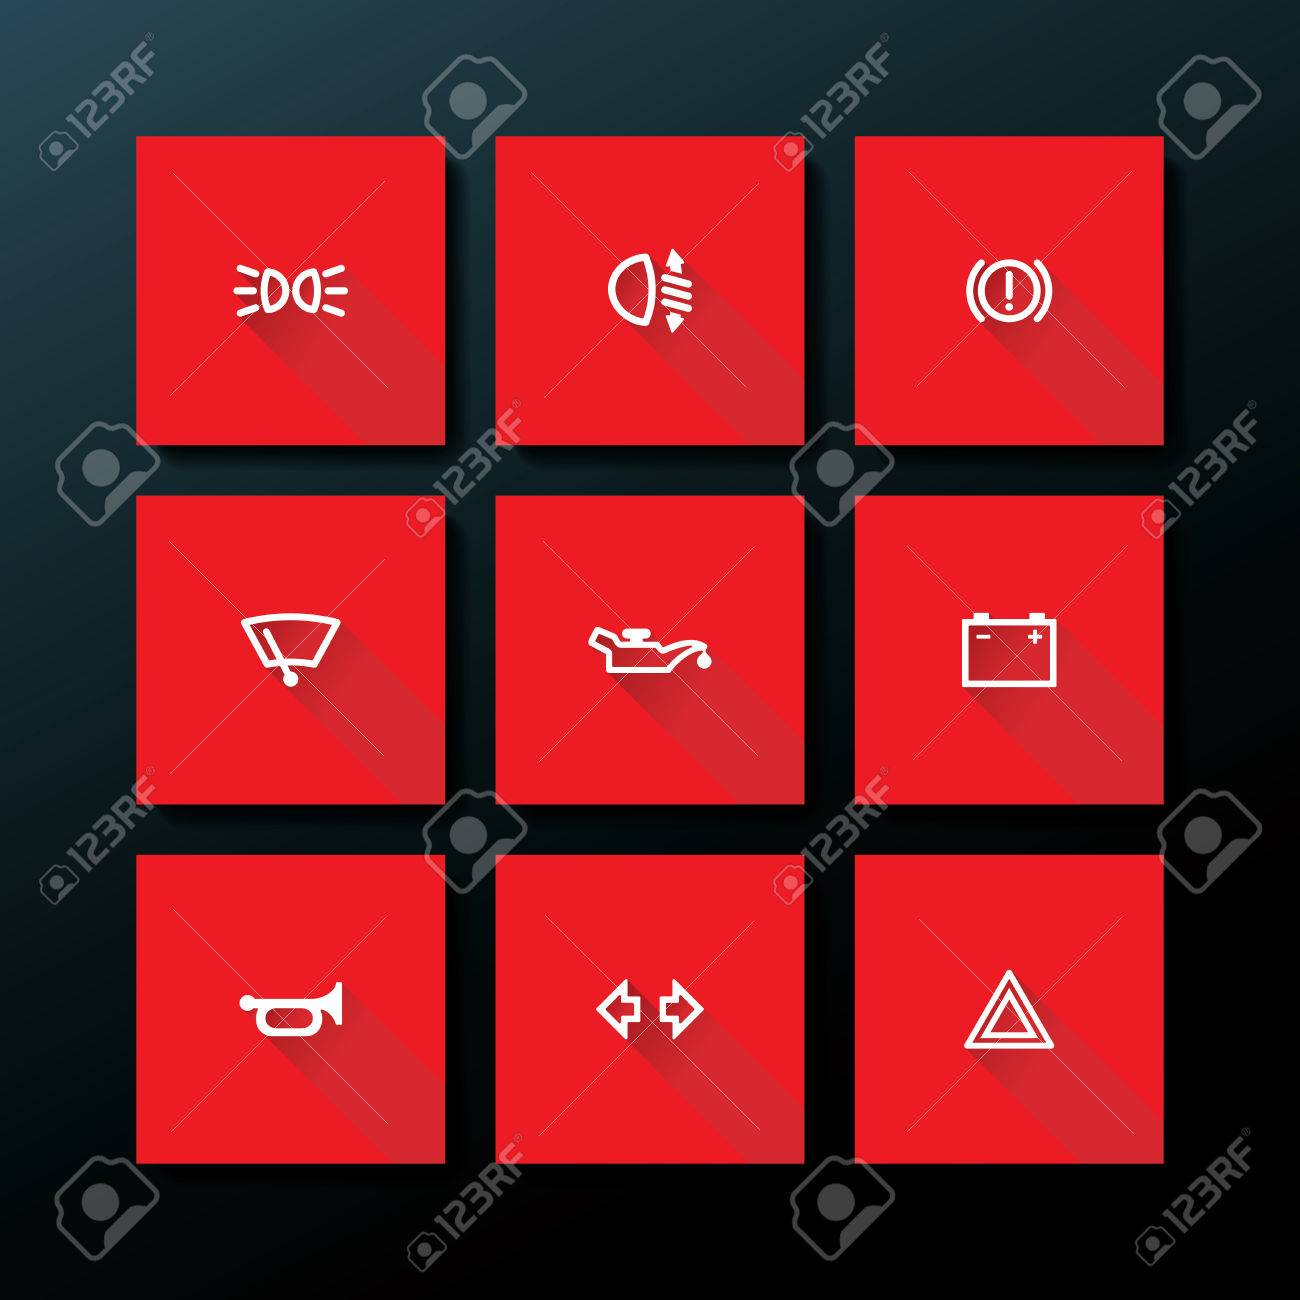 Flat Car Dashboard Icon Set Vector Illustration Royalty Free - Car sign on dashboard